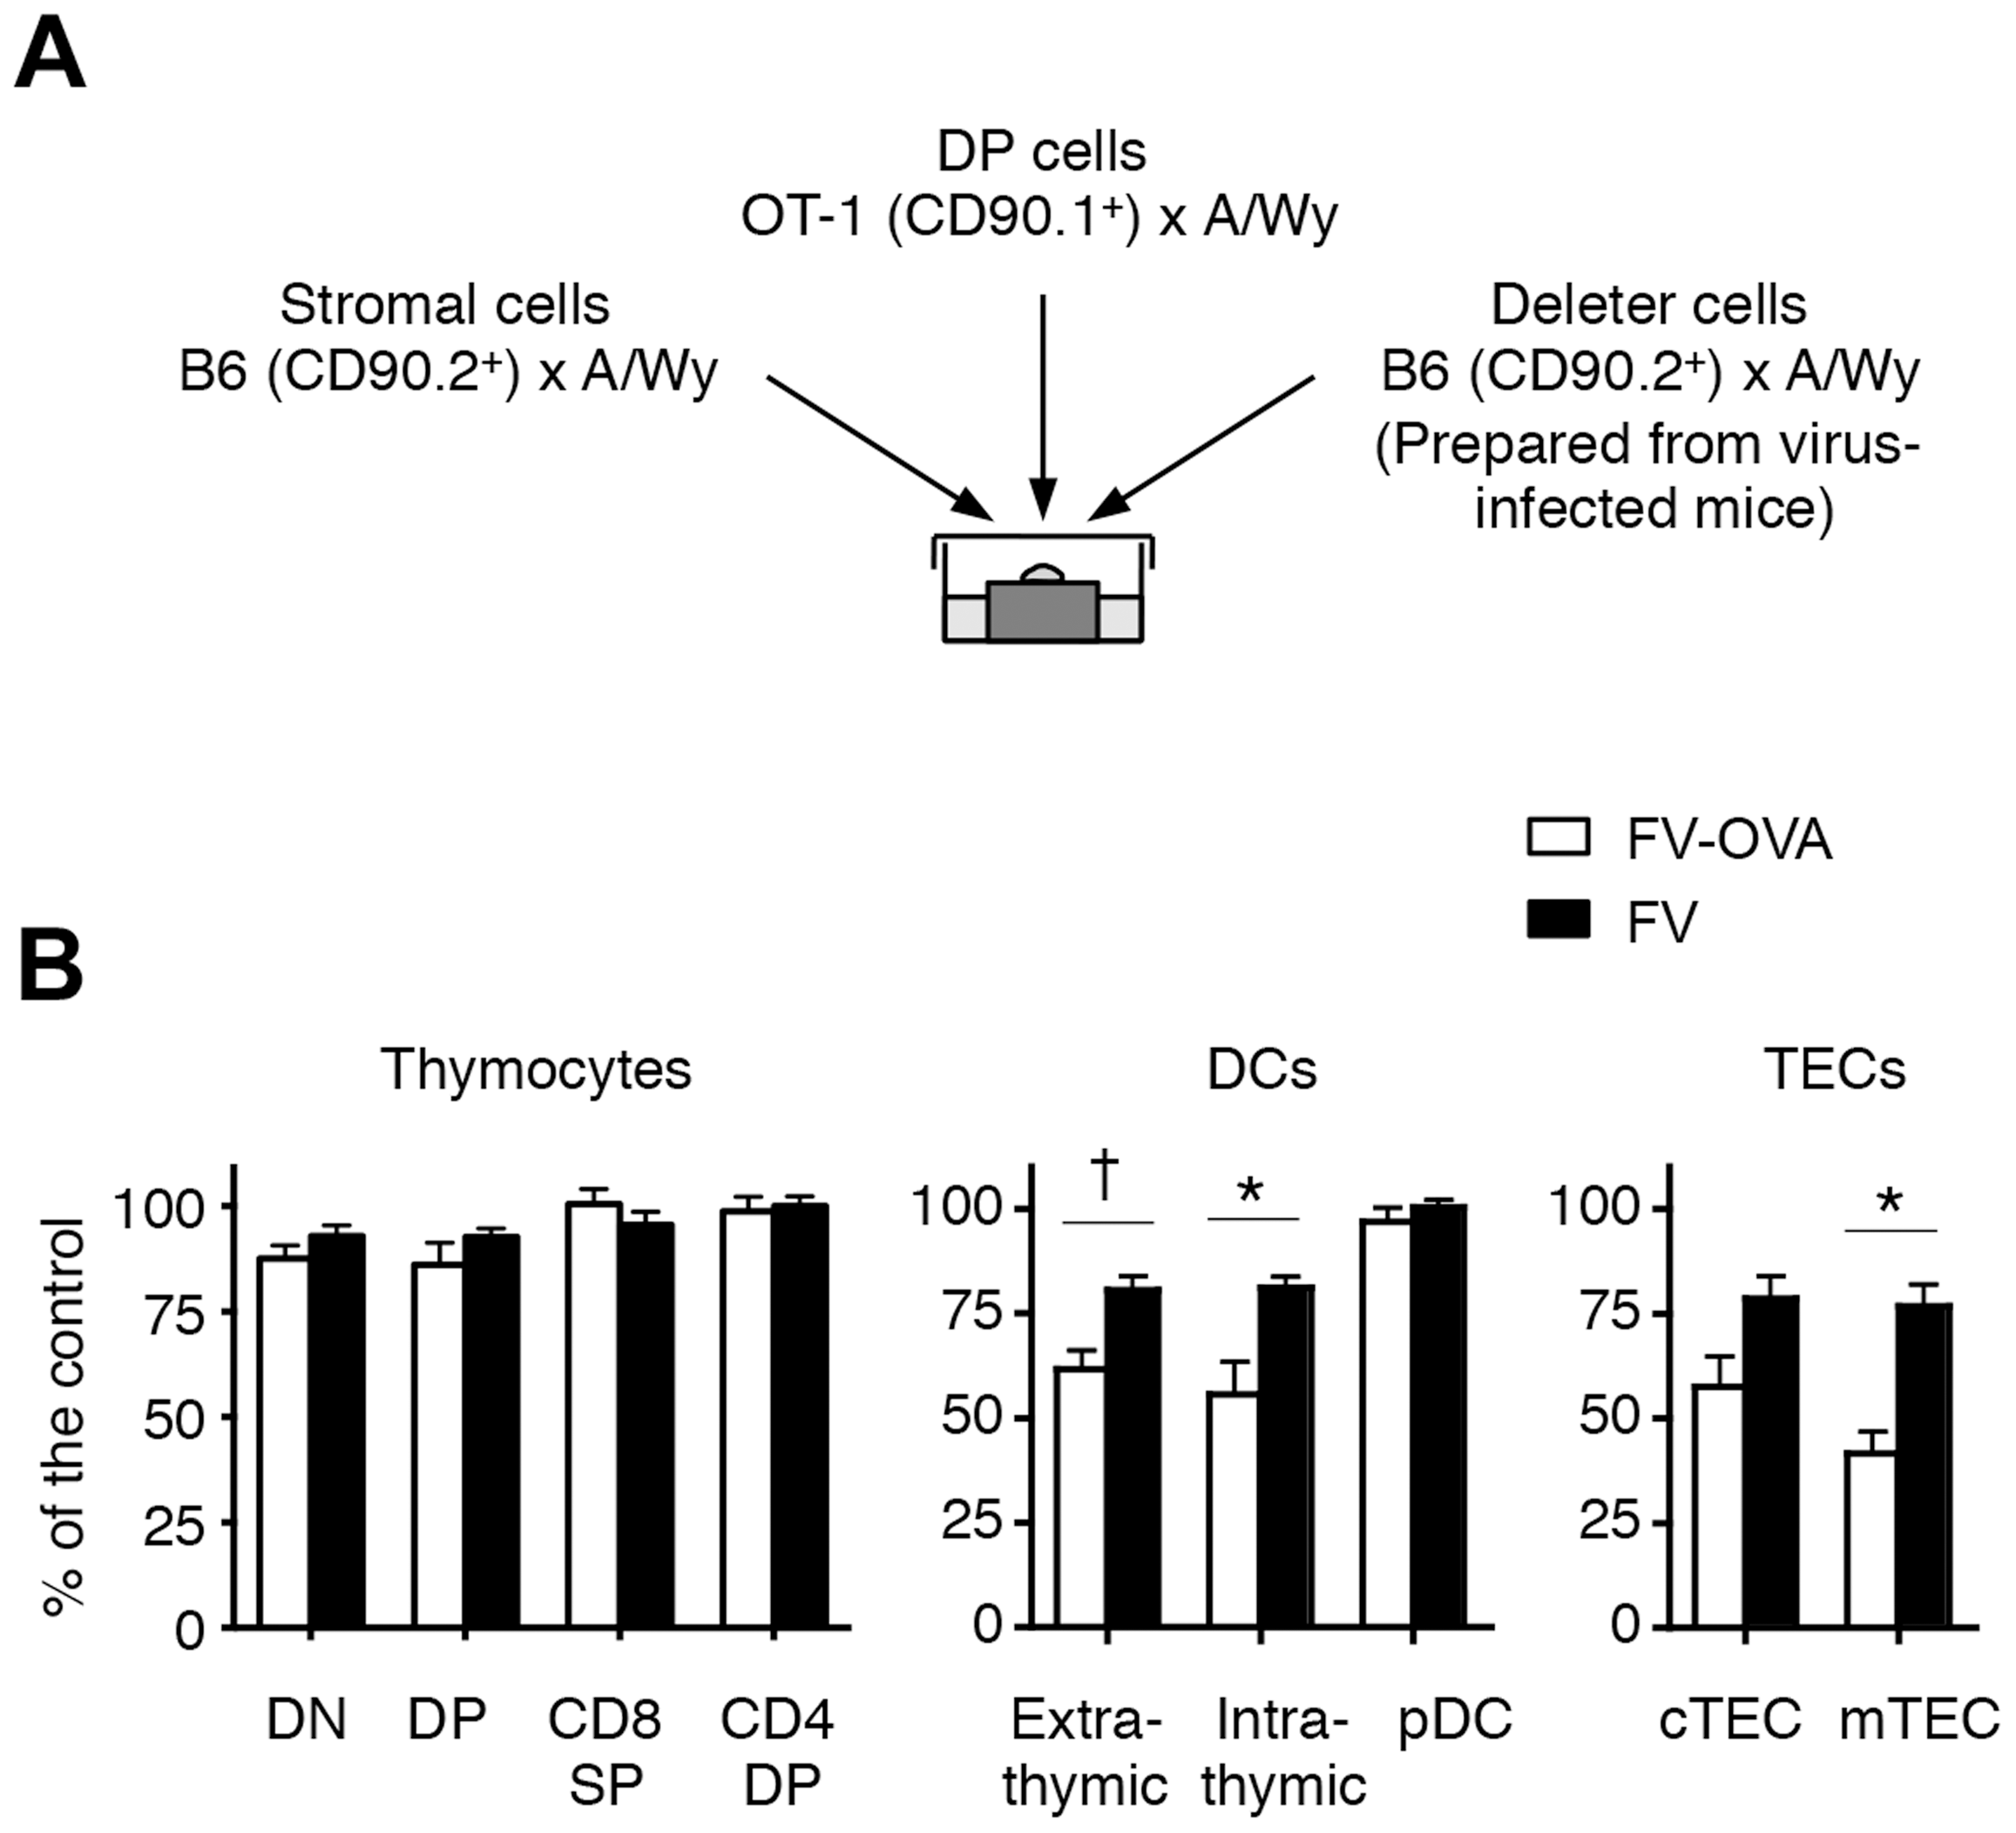 Thymic DCs and TECs are the major deleters of FV-specific thymocytes.